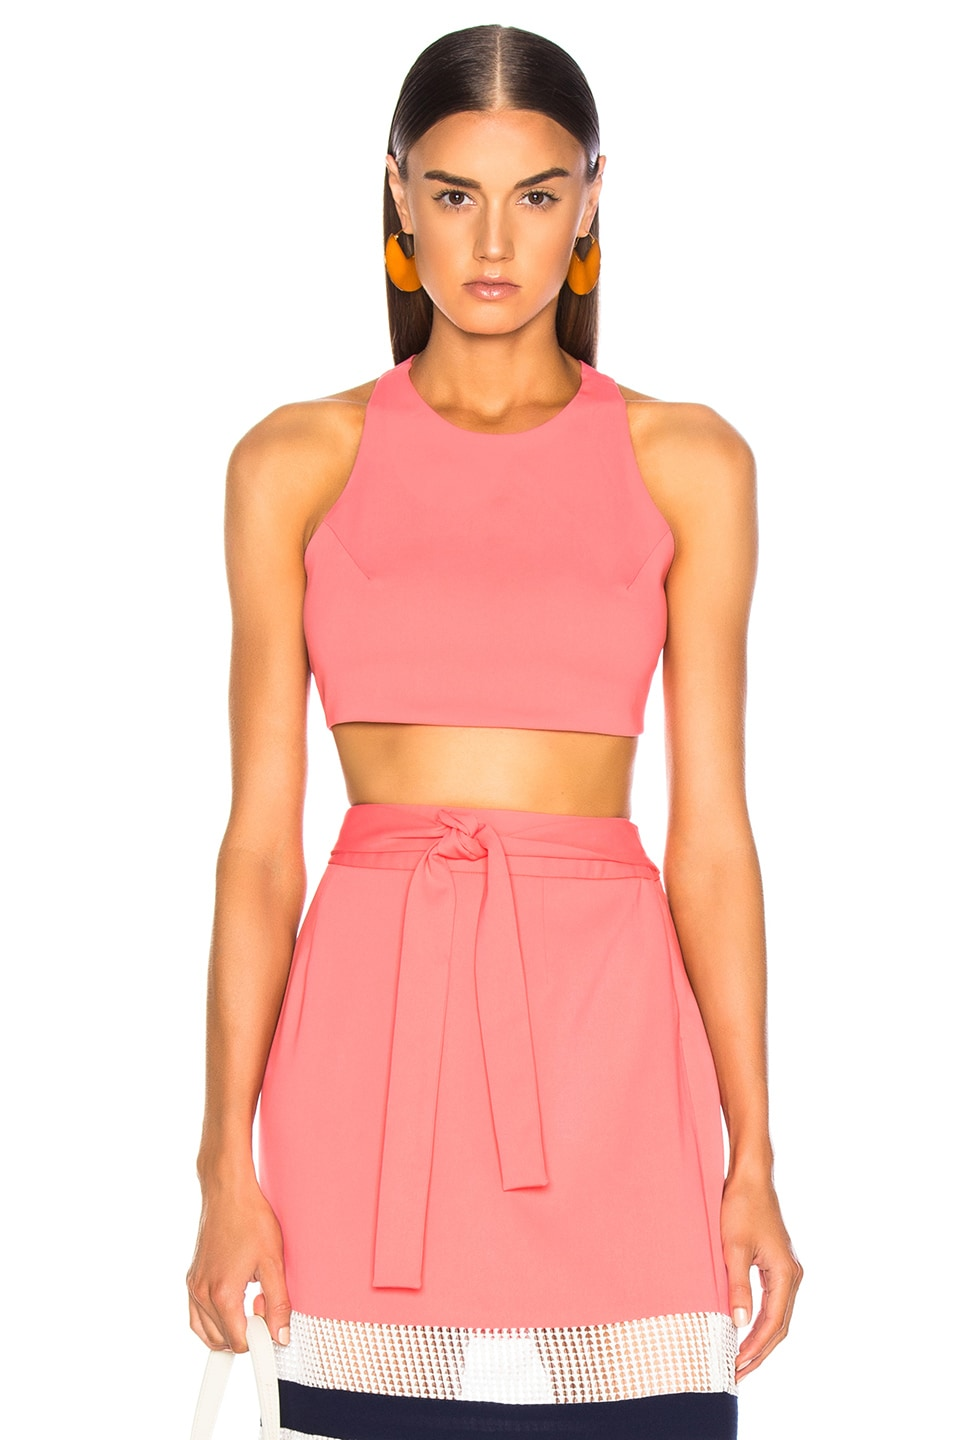 Flagpole FLAGPOLE KATE CROP TOP IN FLAMINGO